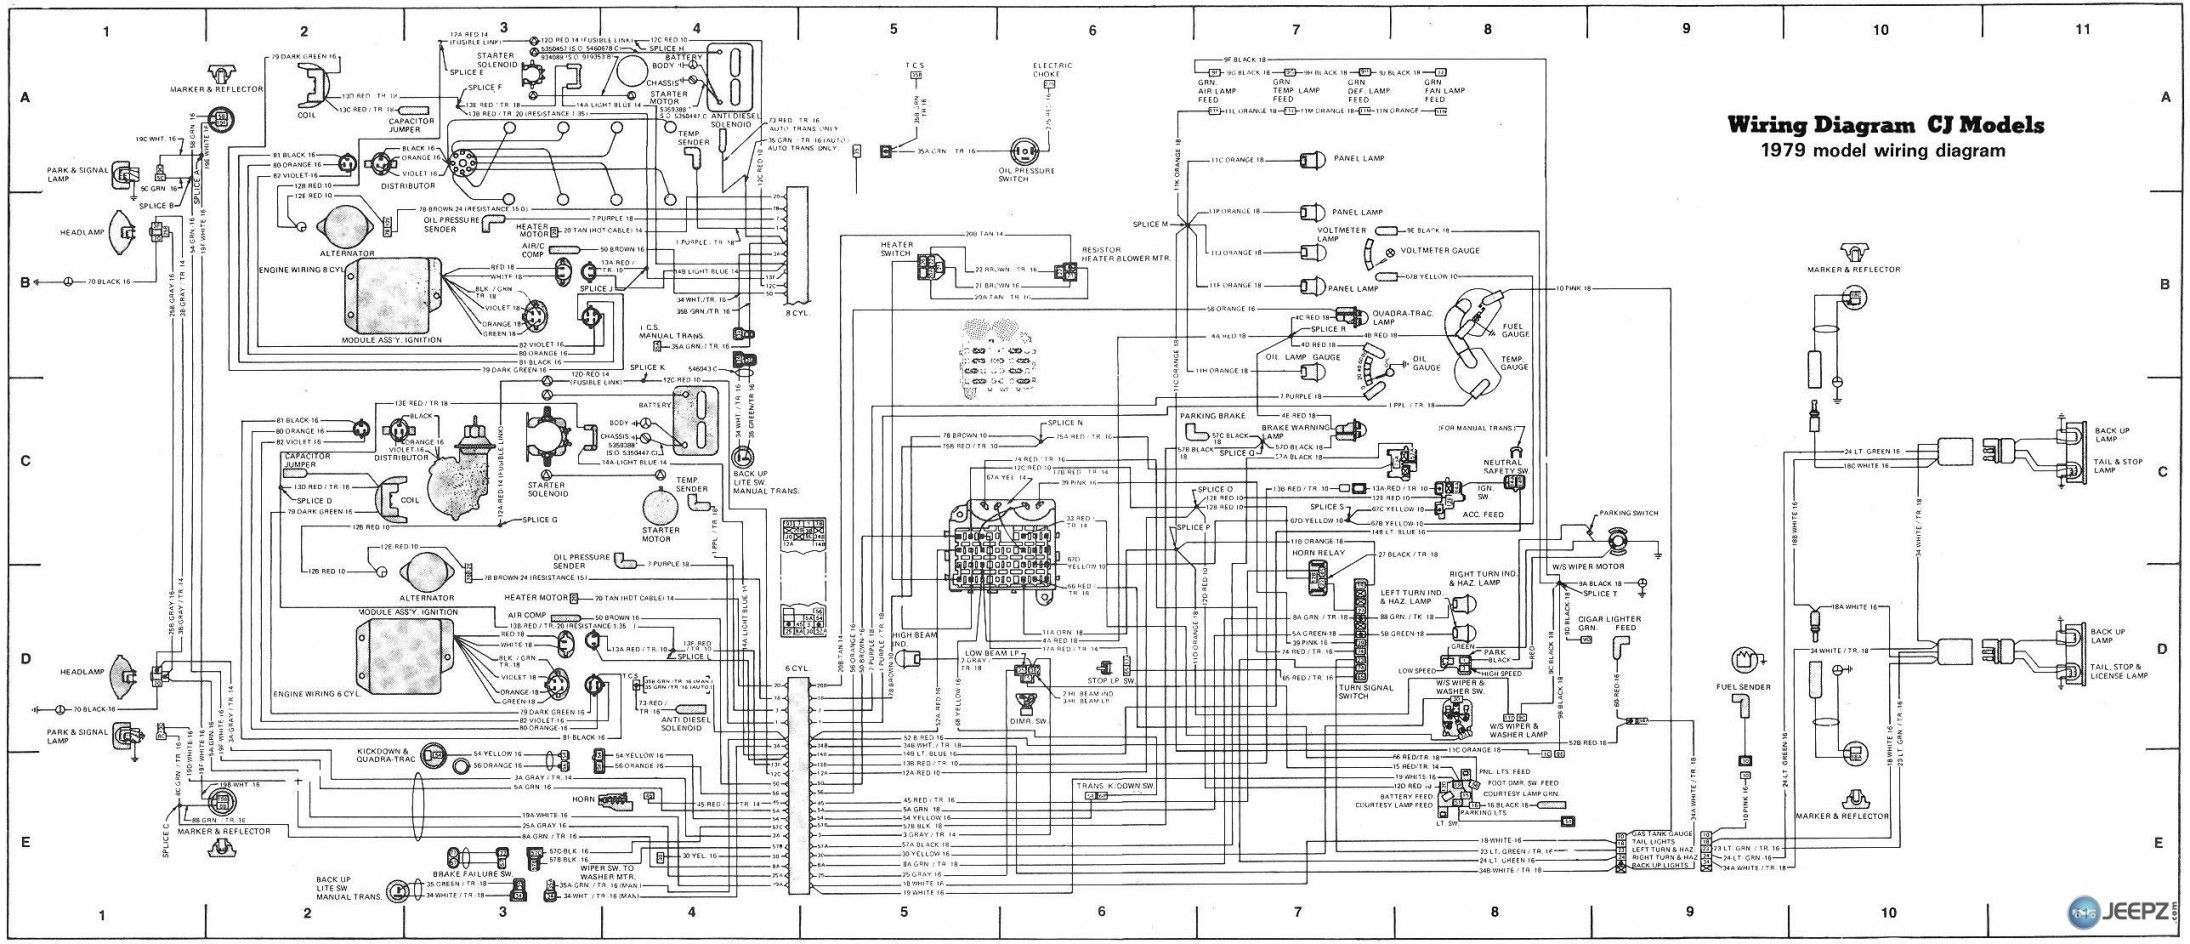 medium resolution of wiring diagram for jeep cj7 auto diagram database 1983 jeep cj7 gauge cluster wiring diagram